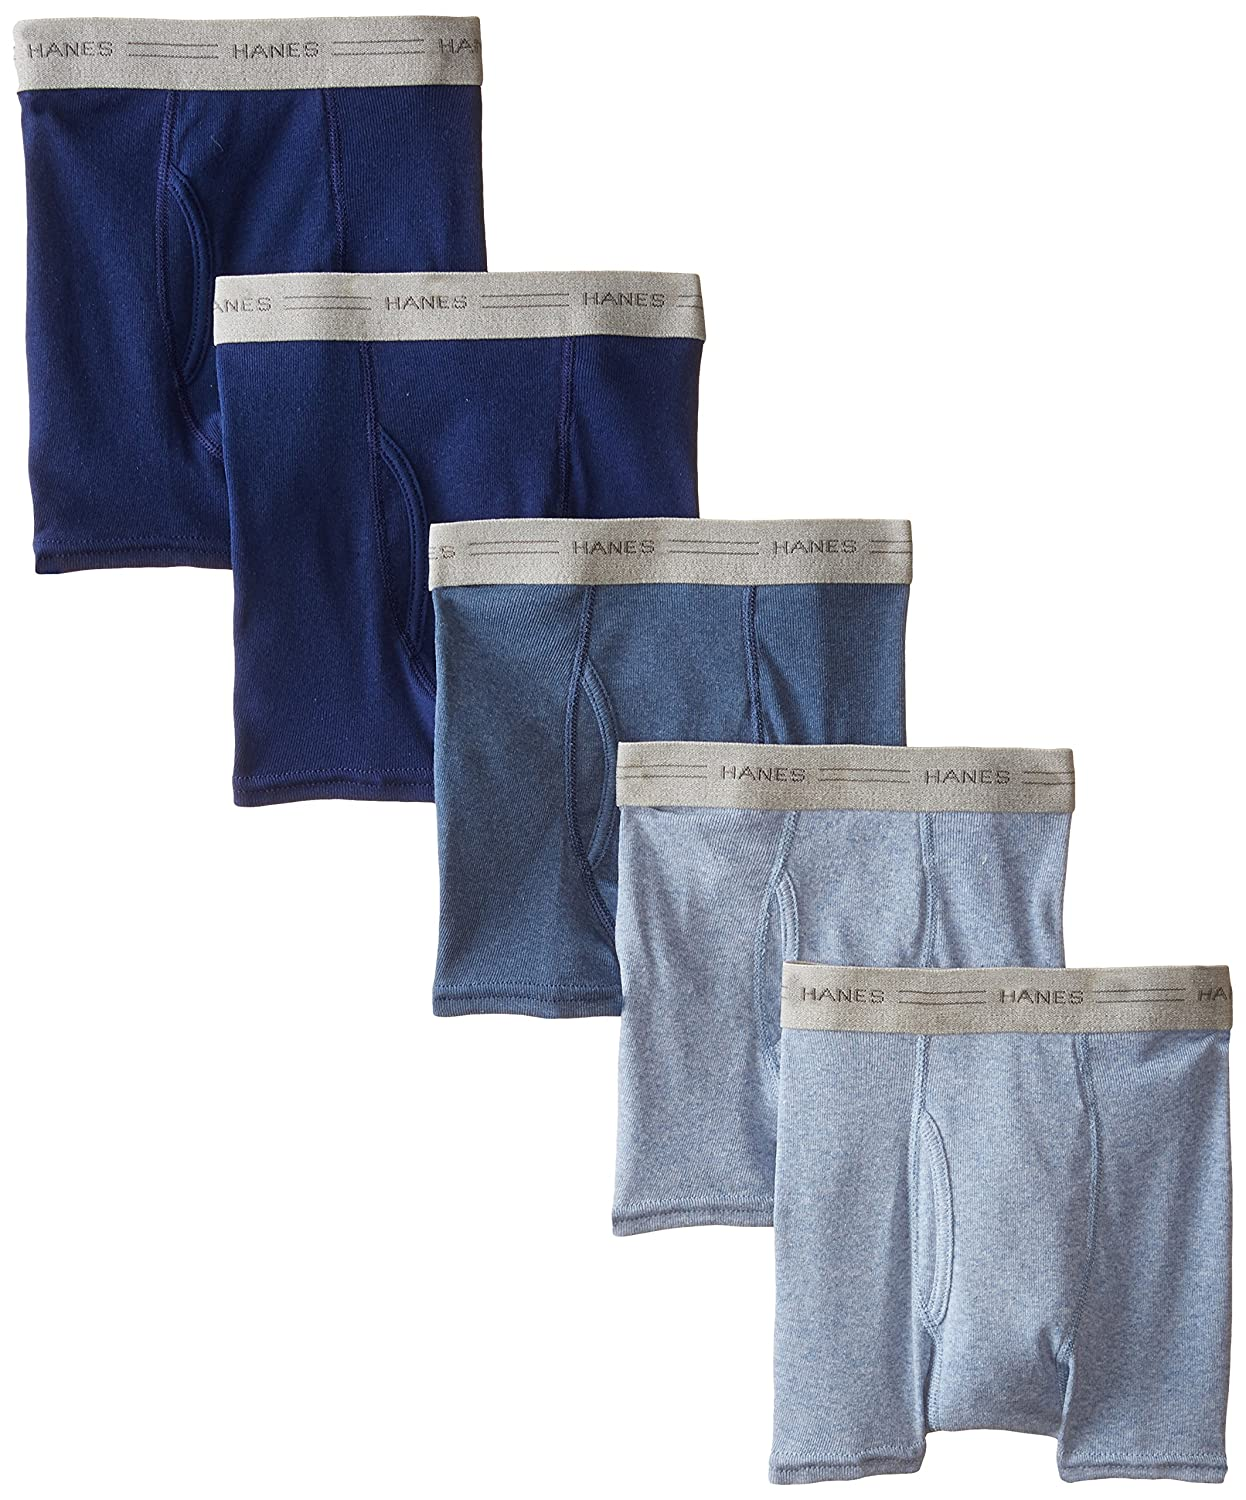 Hanes Boys' Boxer Brief Pack of 5 Assorted Large Hanes Boys Red Label Bottoms B749B5